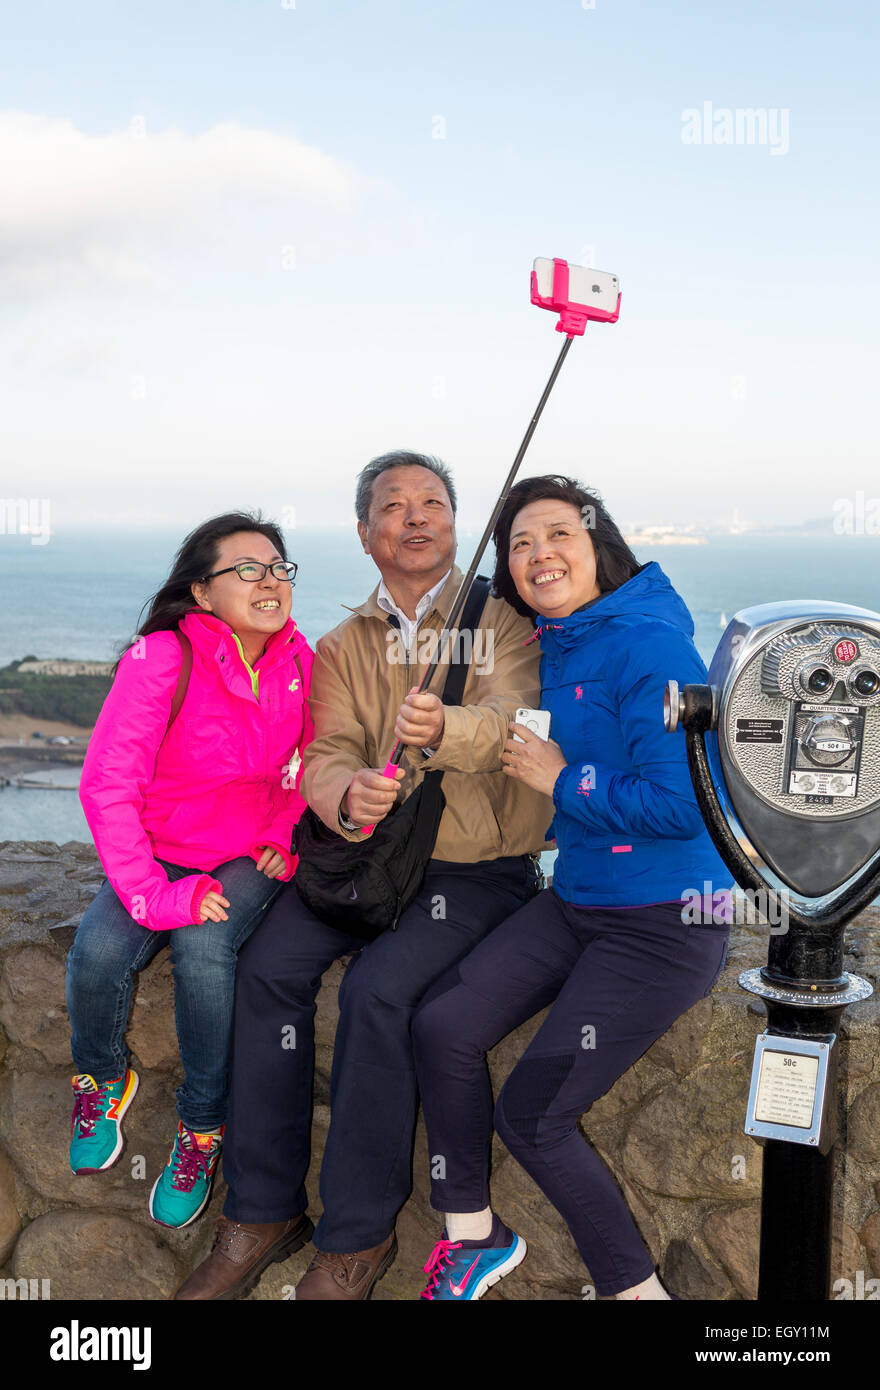 tourists, family, taking selfie, selfie photo, selfie stick, cellphone, Vista Point, north side of Golden Gate Bridge, - Stock Image